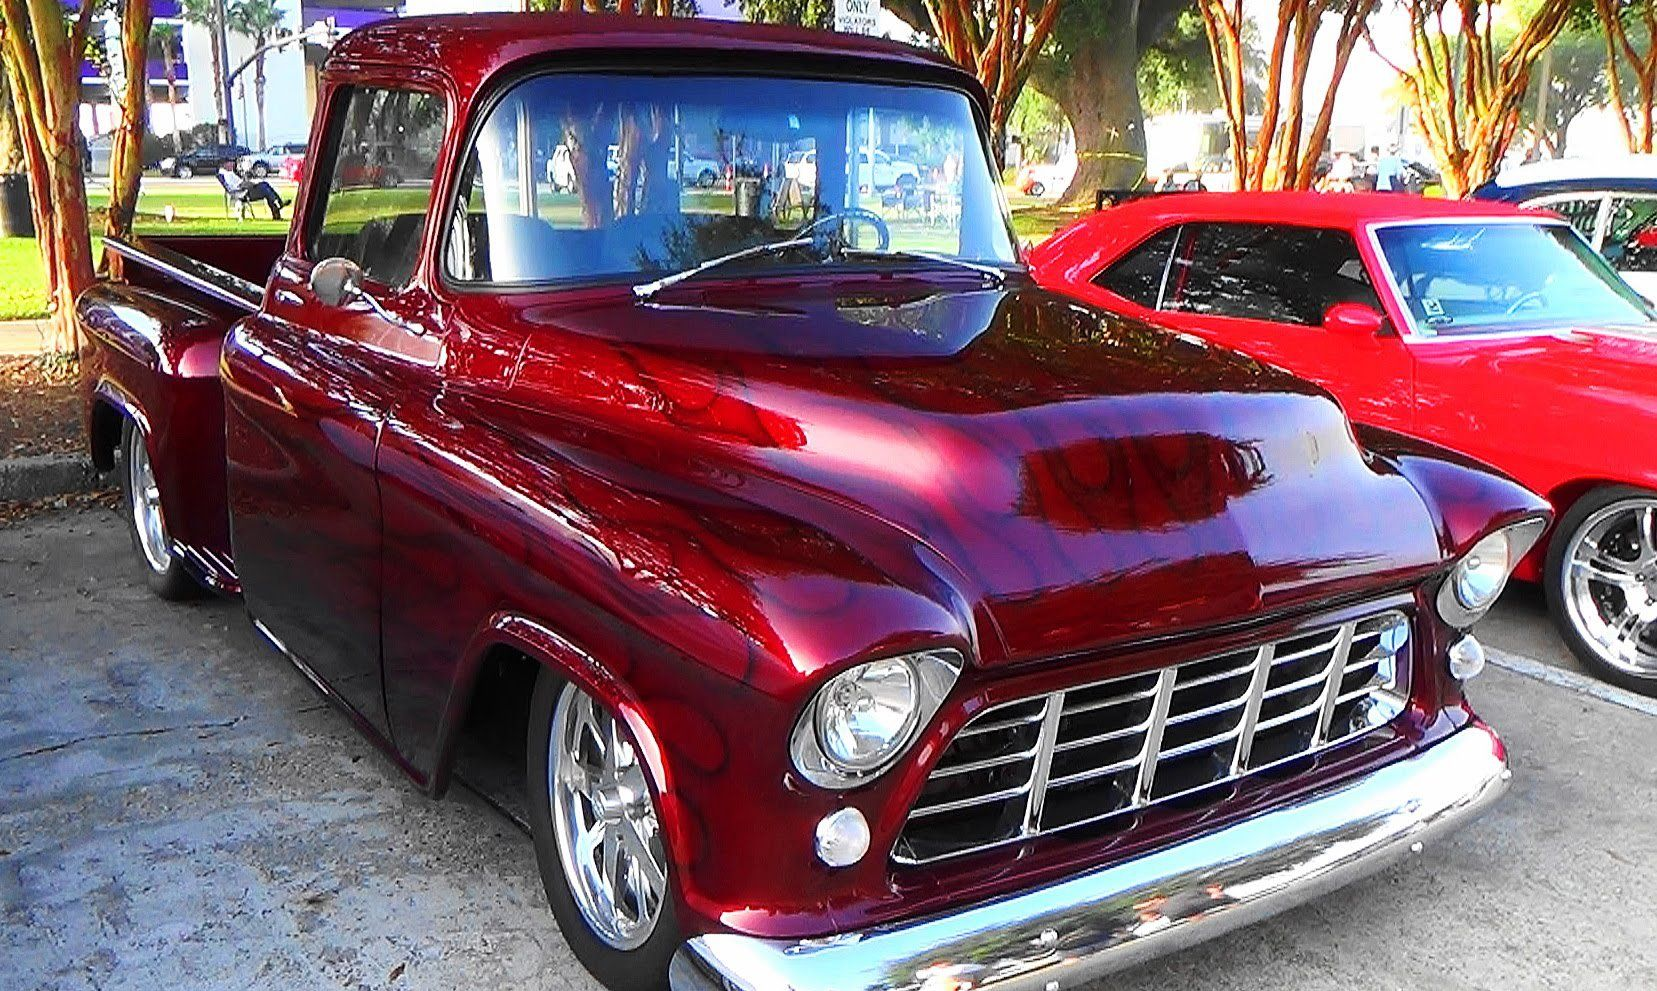 55 chevy truck has phenomenal flame job in its stunning candy paint rh pinterest com